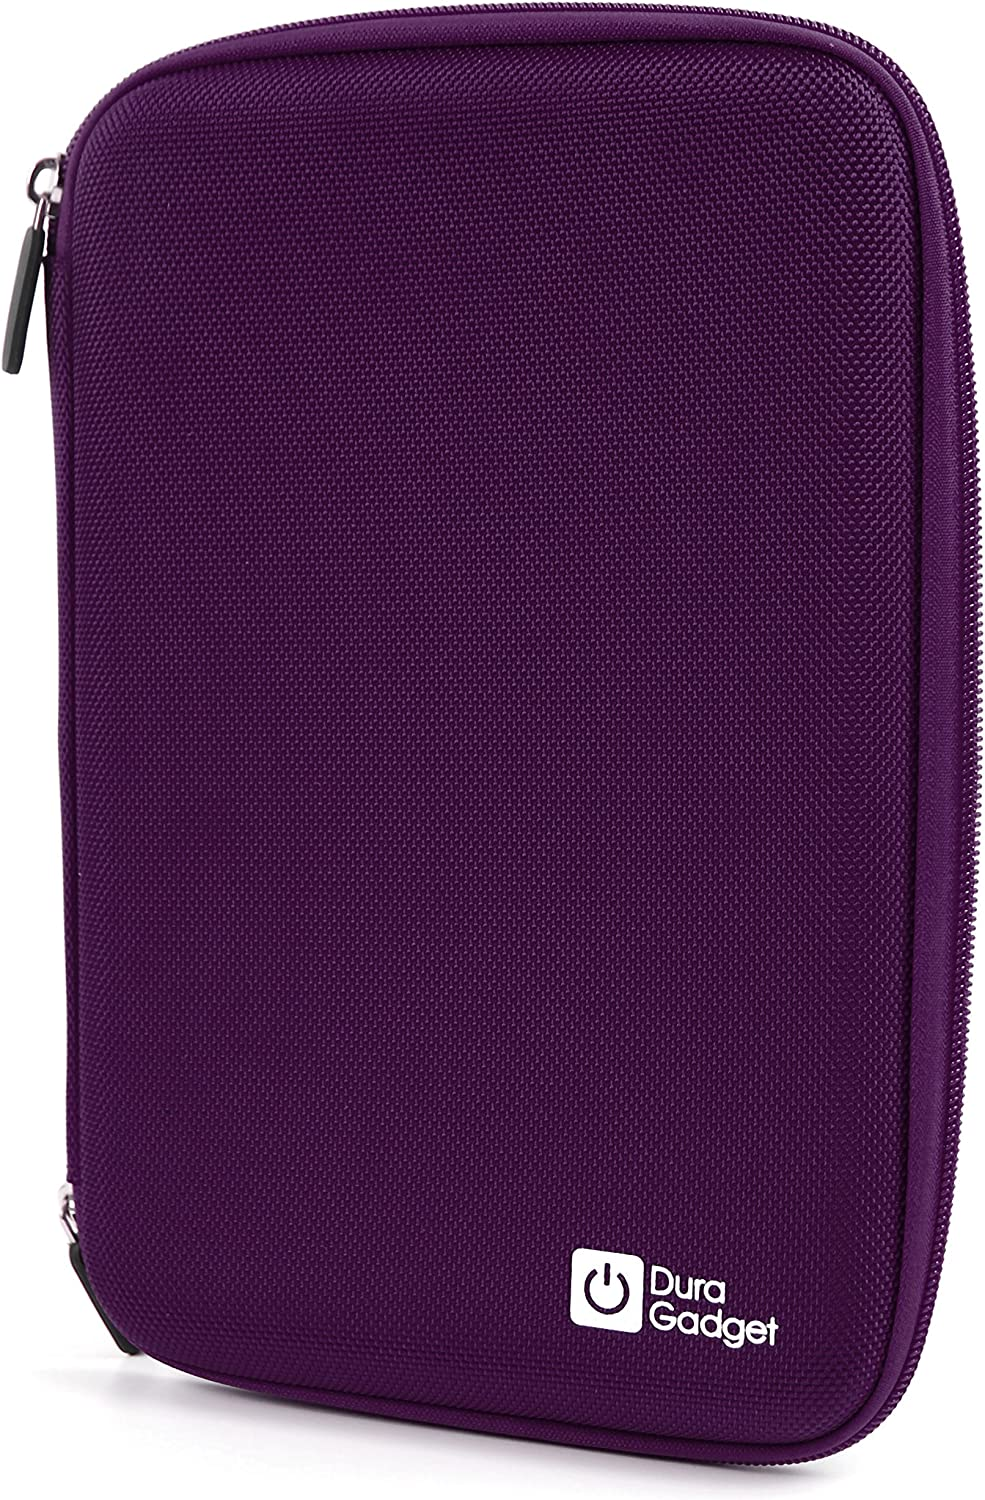 DURAGADGET Purple Rigid Protective Zip Armoured Case with Soft Inner Lining /& Netted Pocket for The Clempad XL